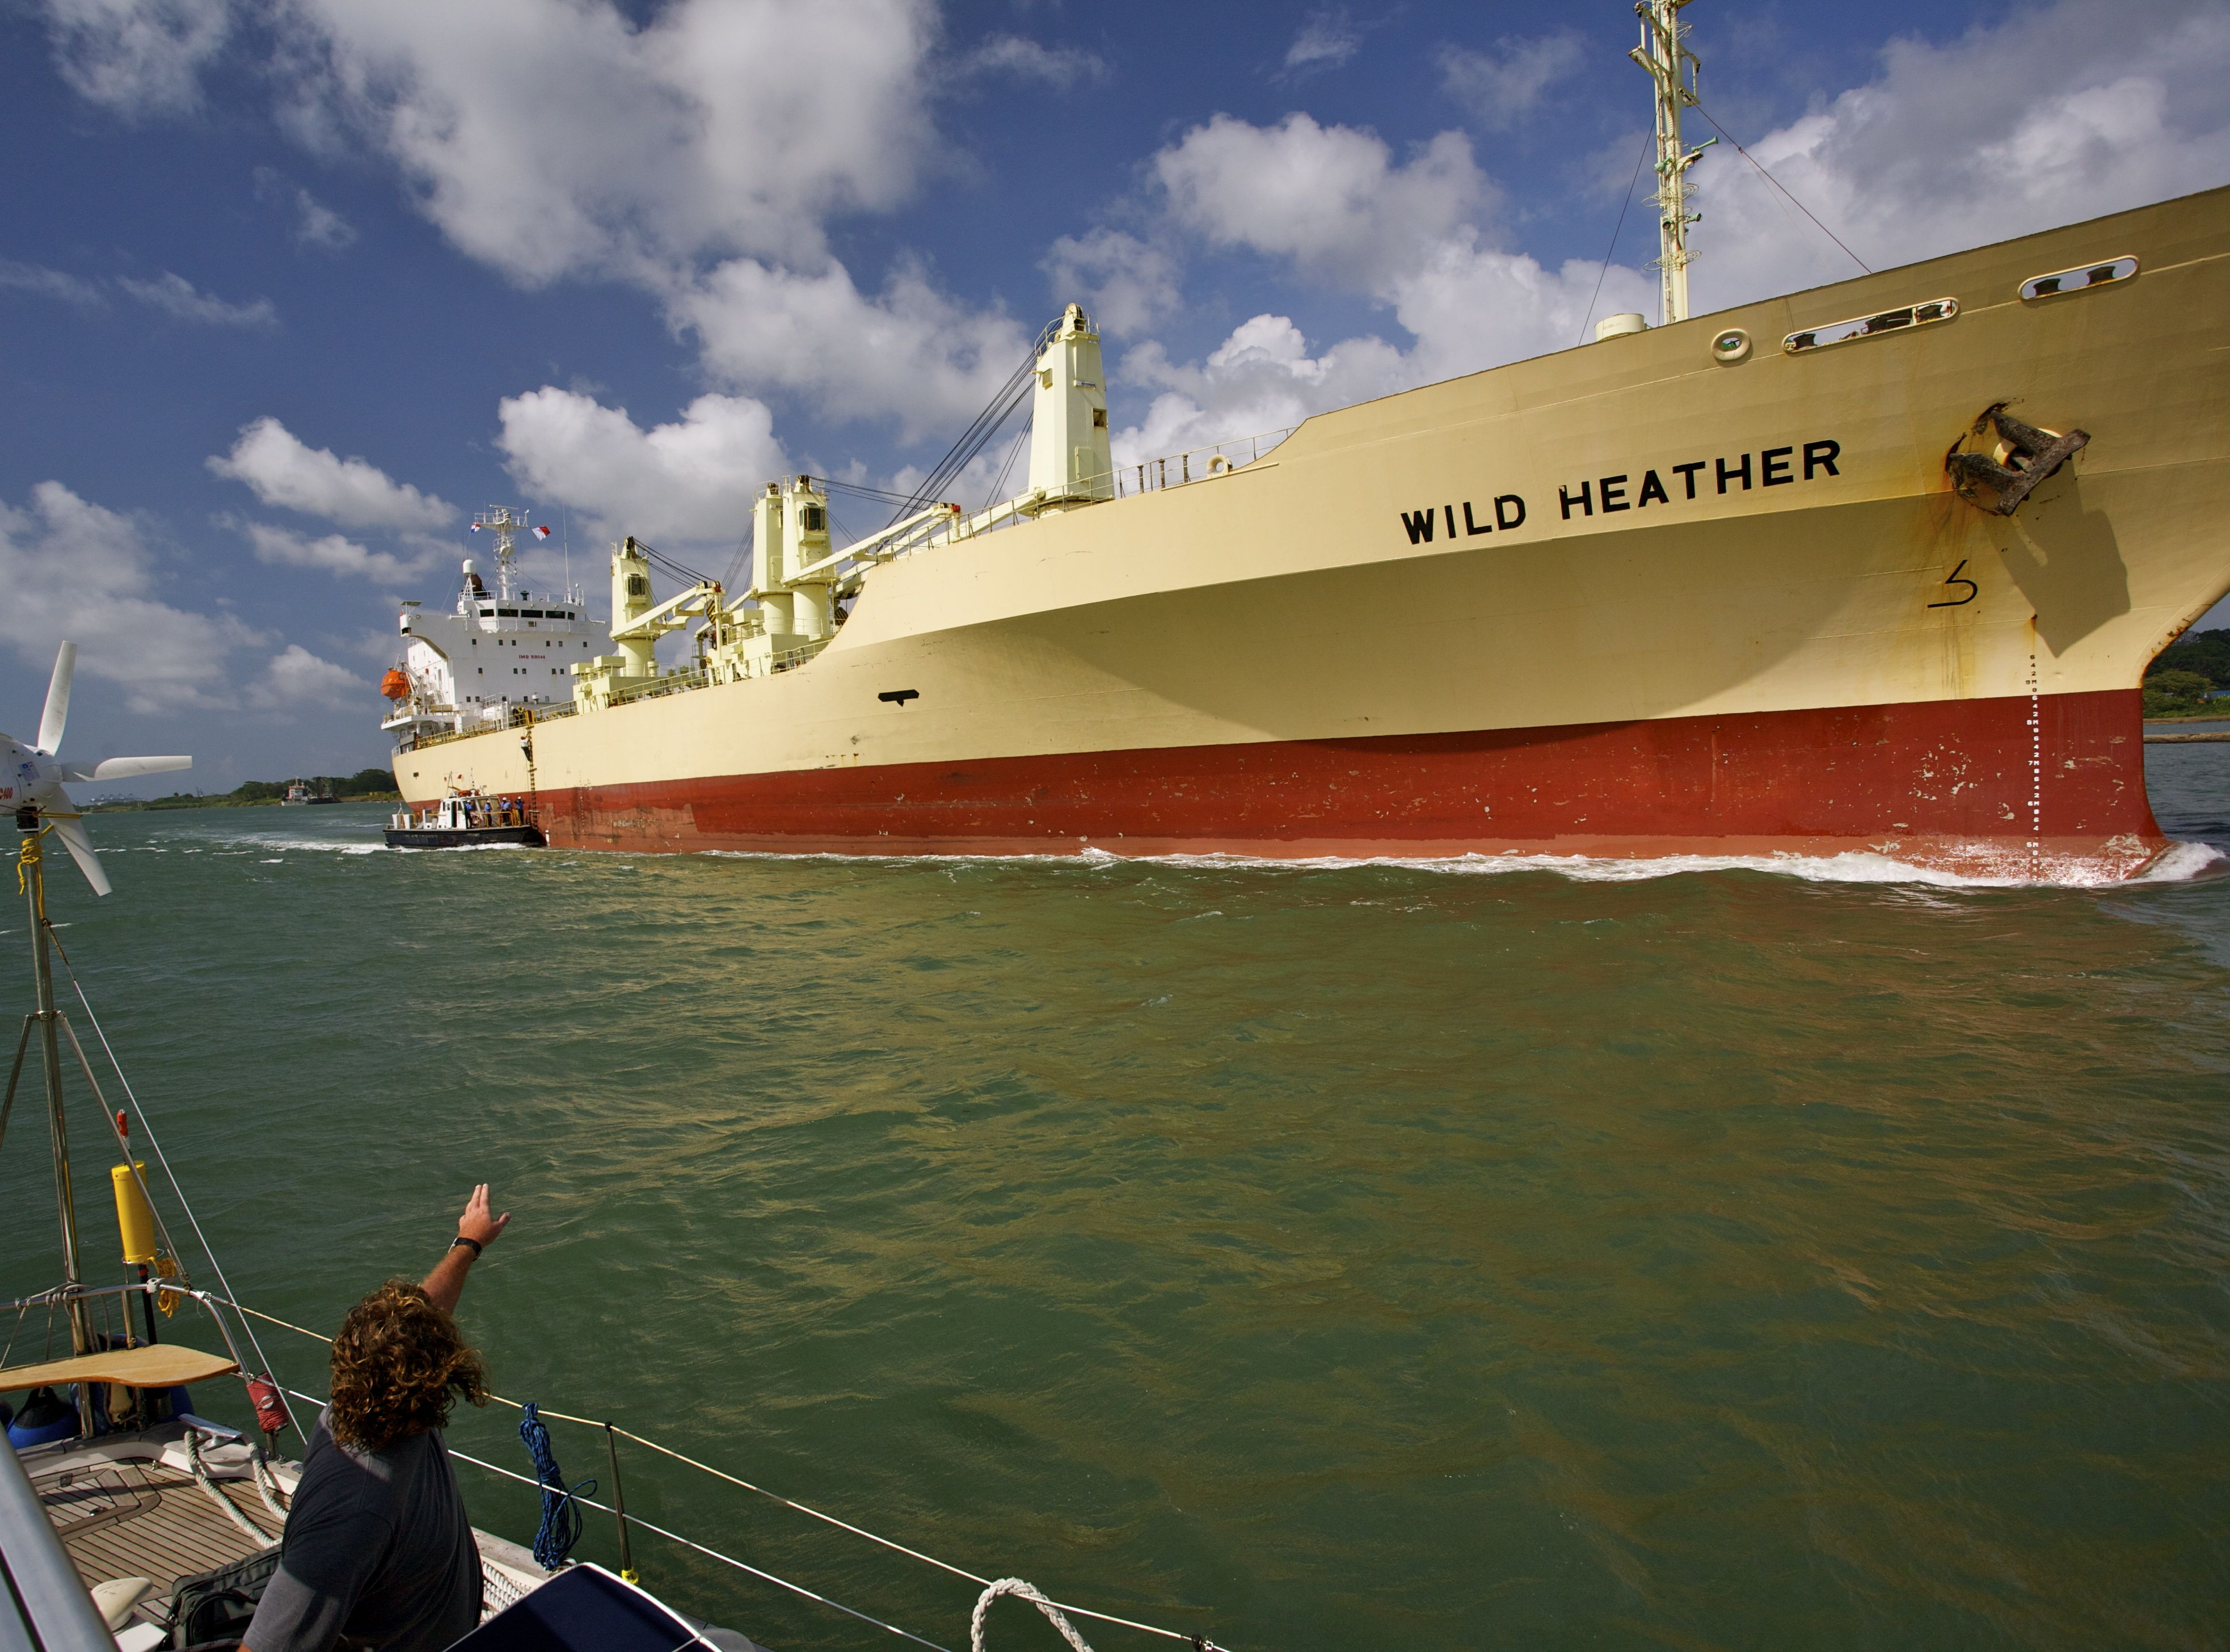 Wild Heather enters the panama canal